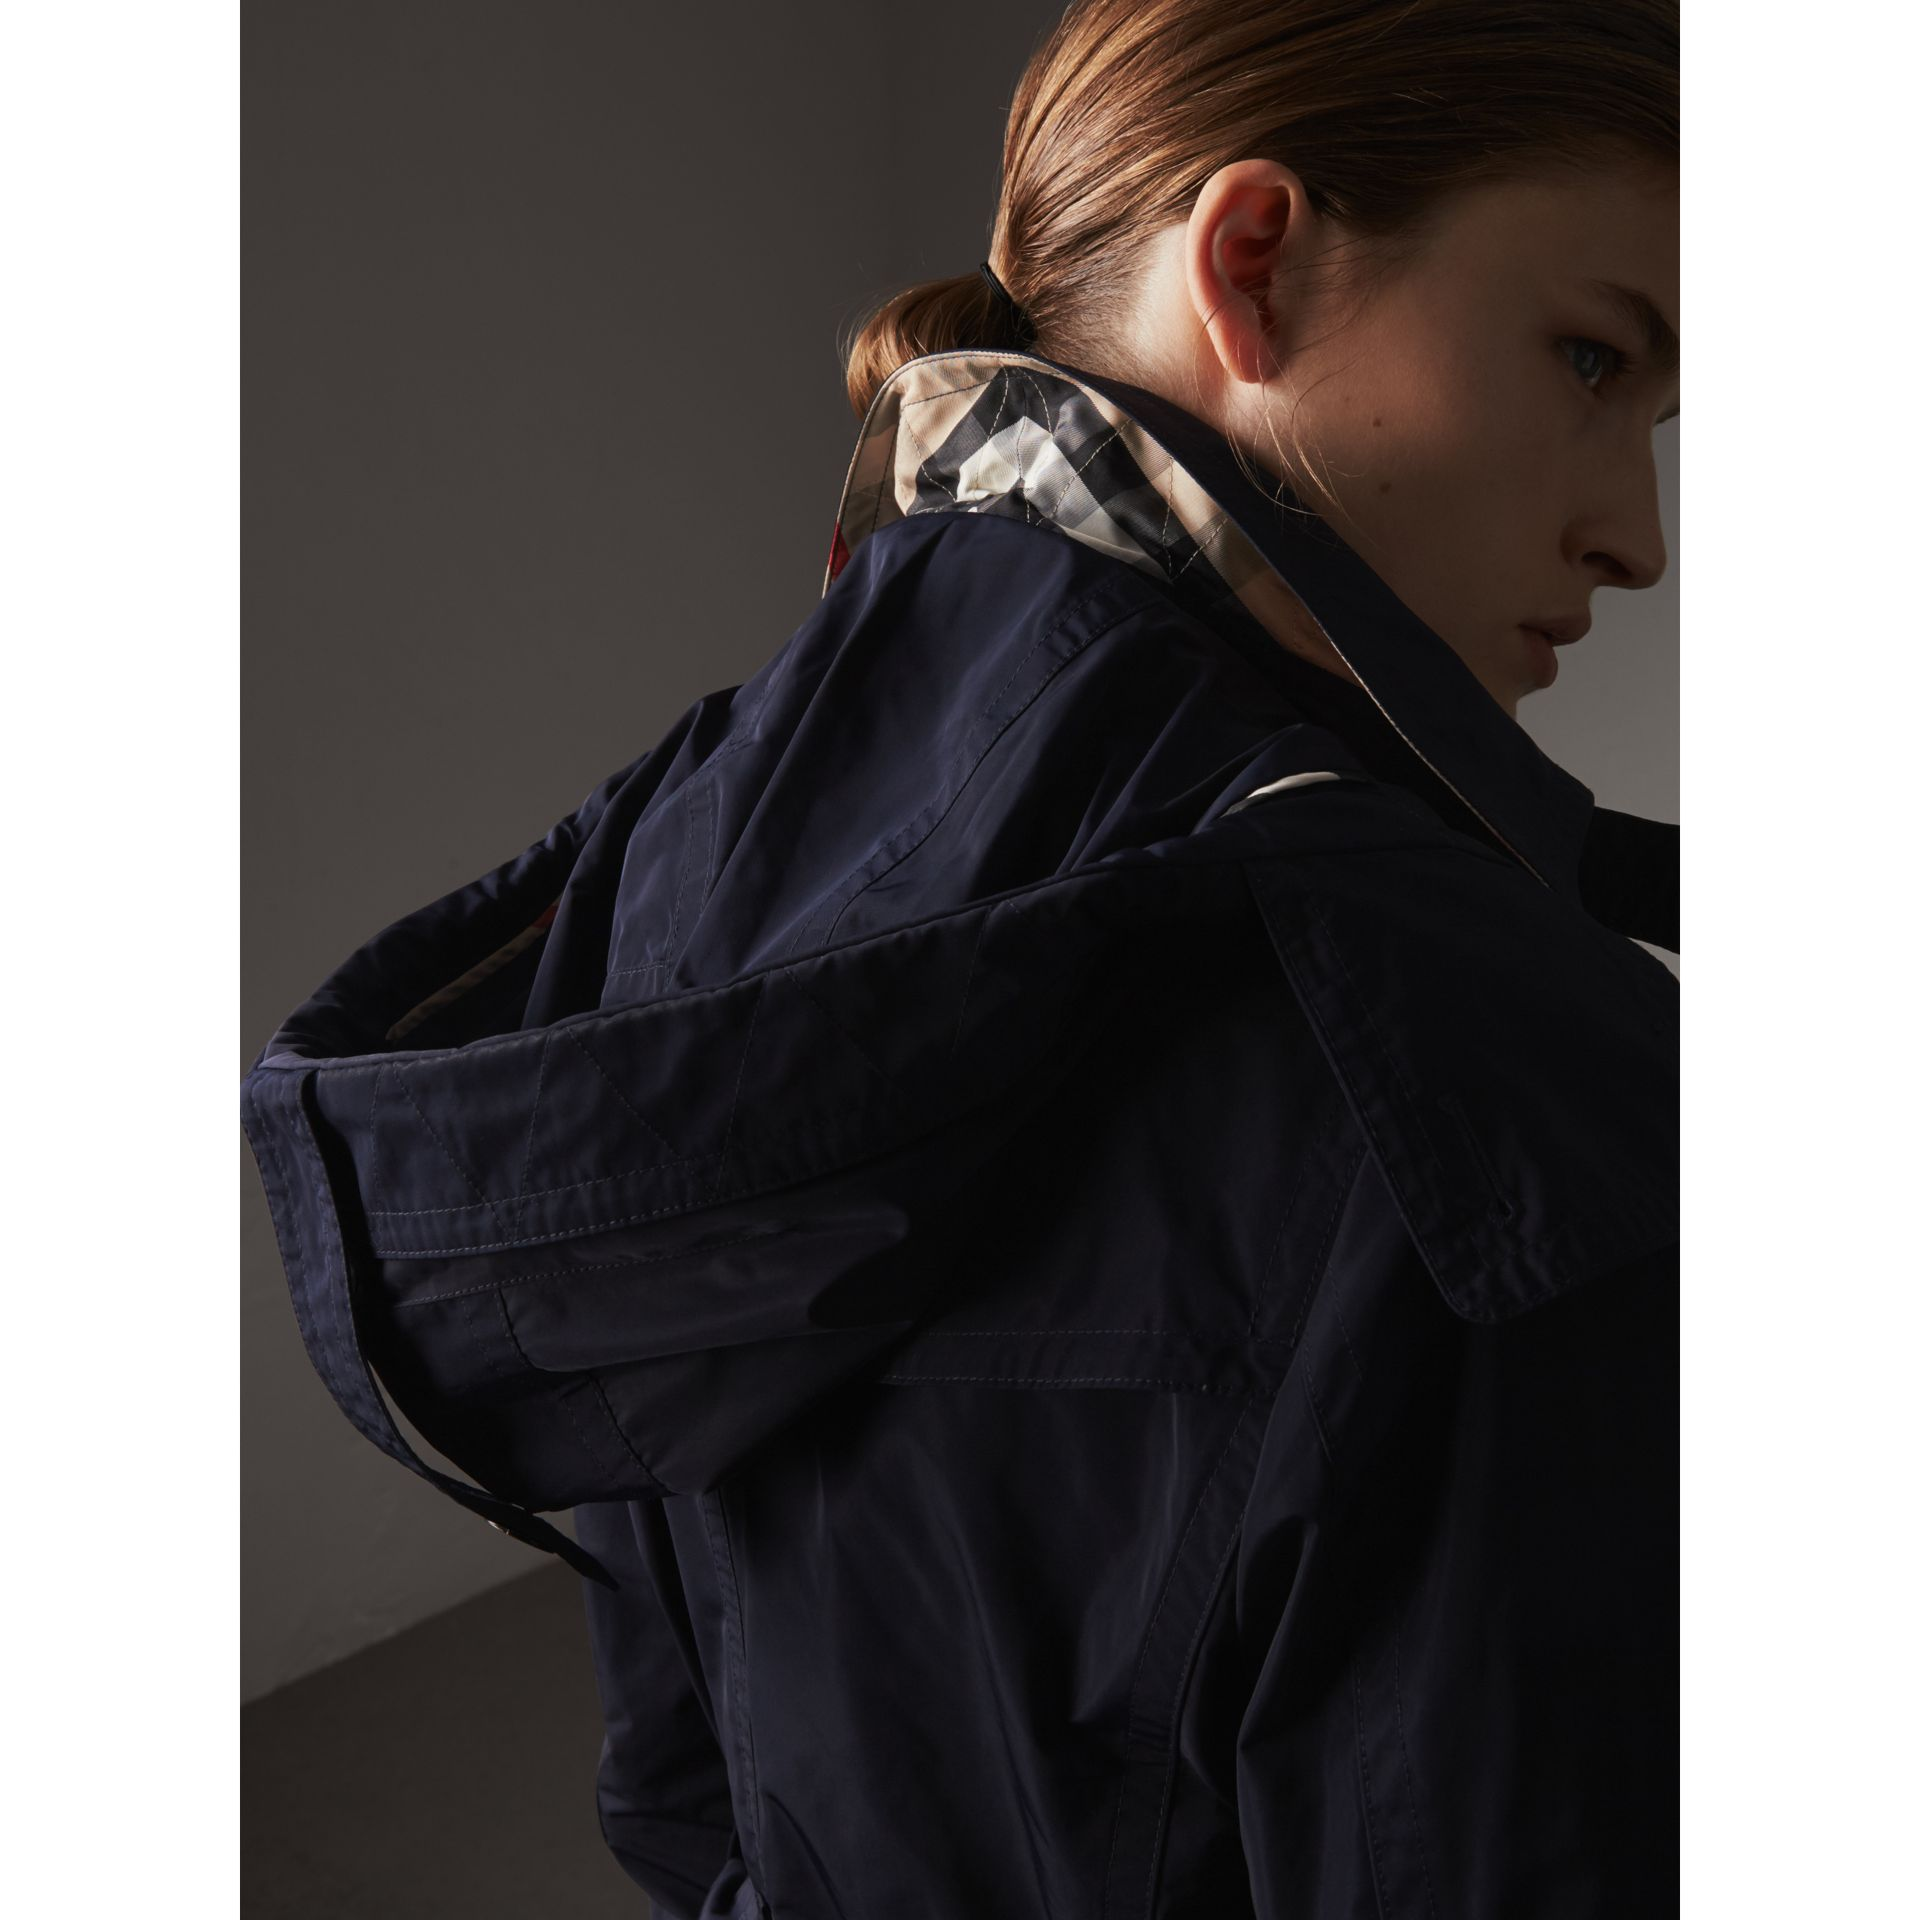 Taffeta Trench Coat with Detachable Hood in Navy - Women | Burberry Hong Kong - gallery image 2